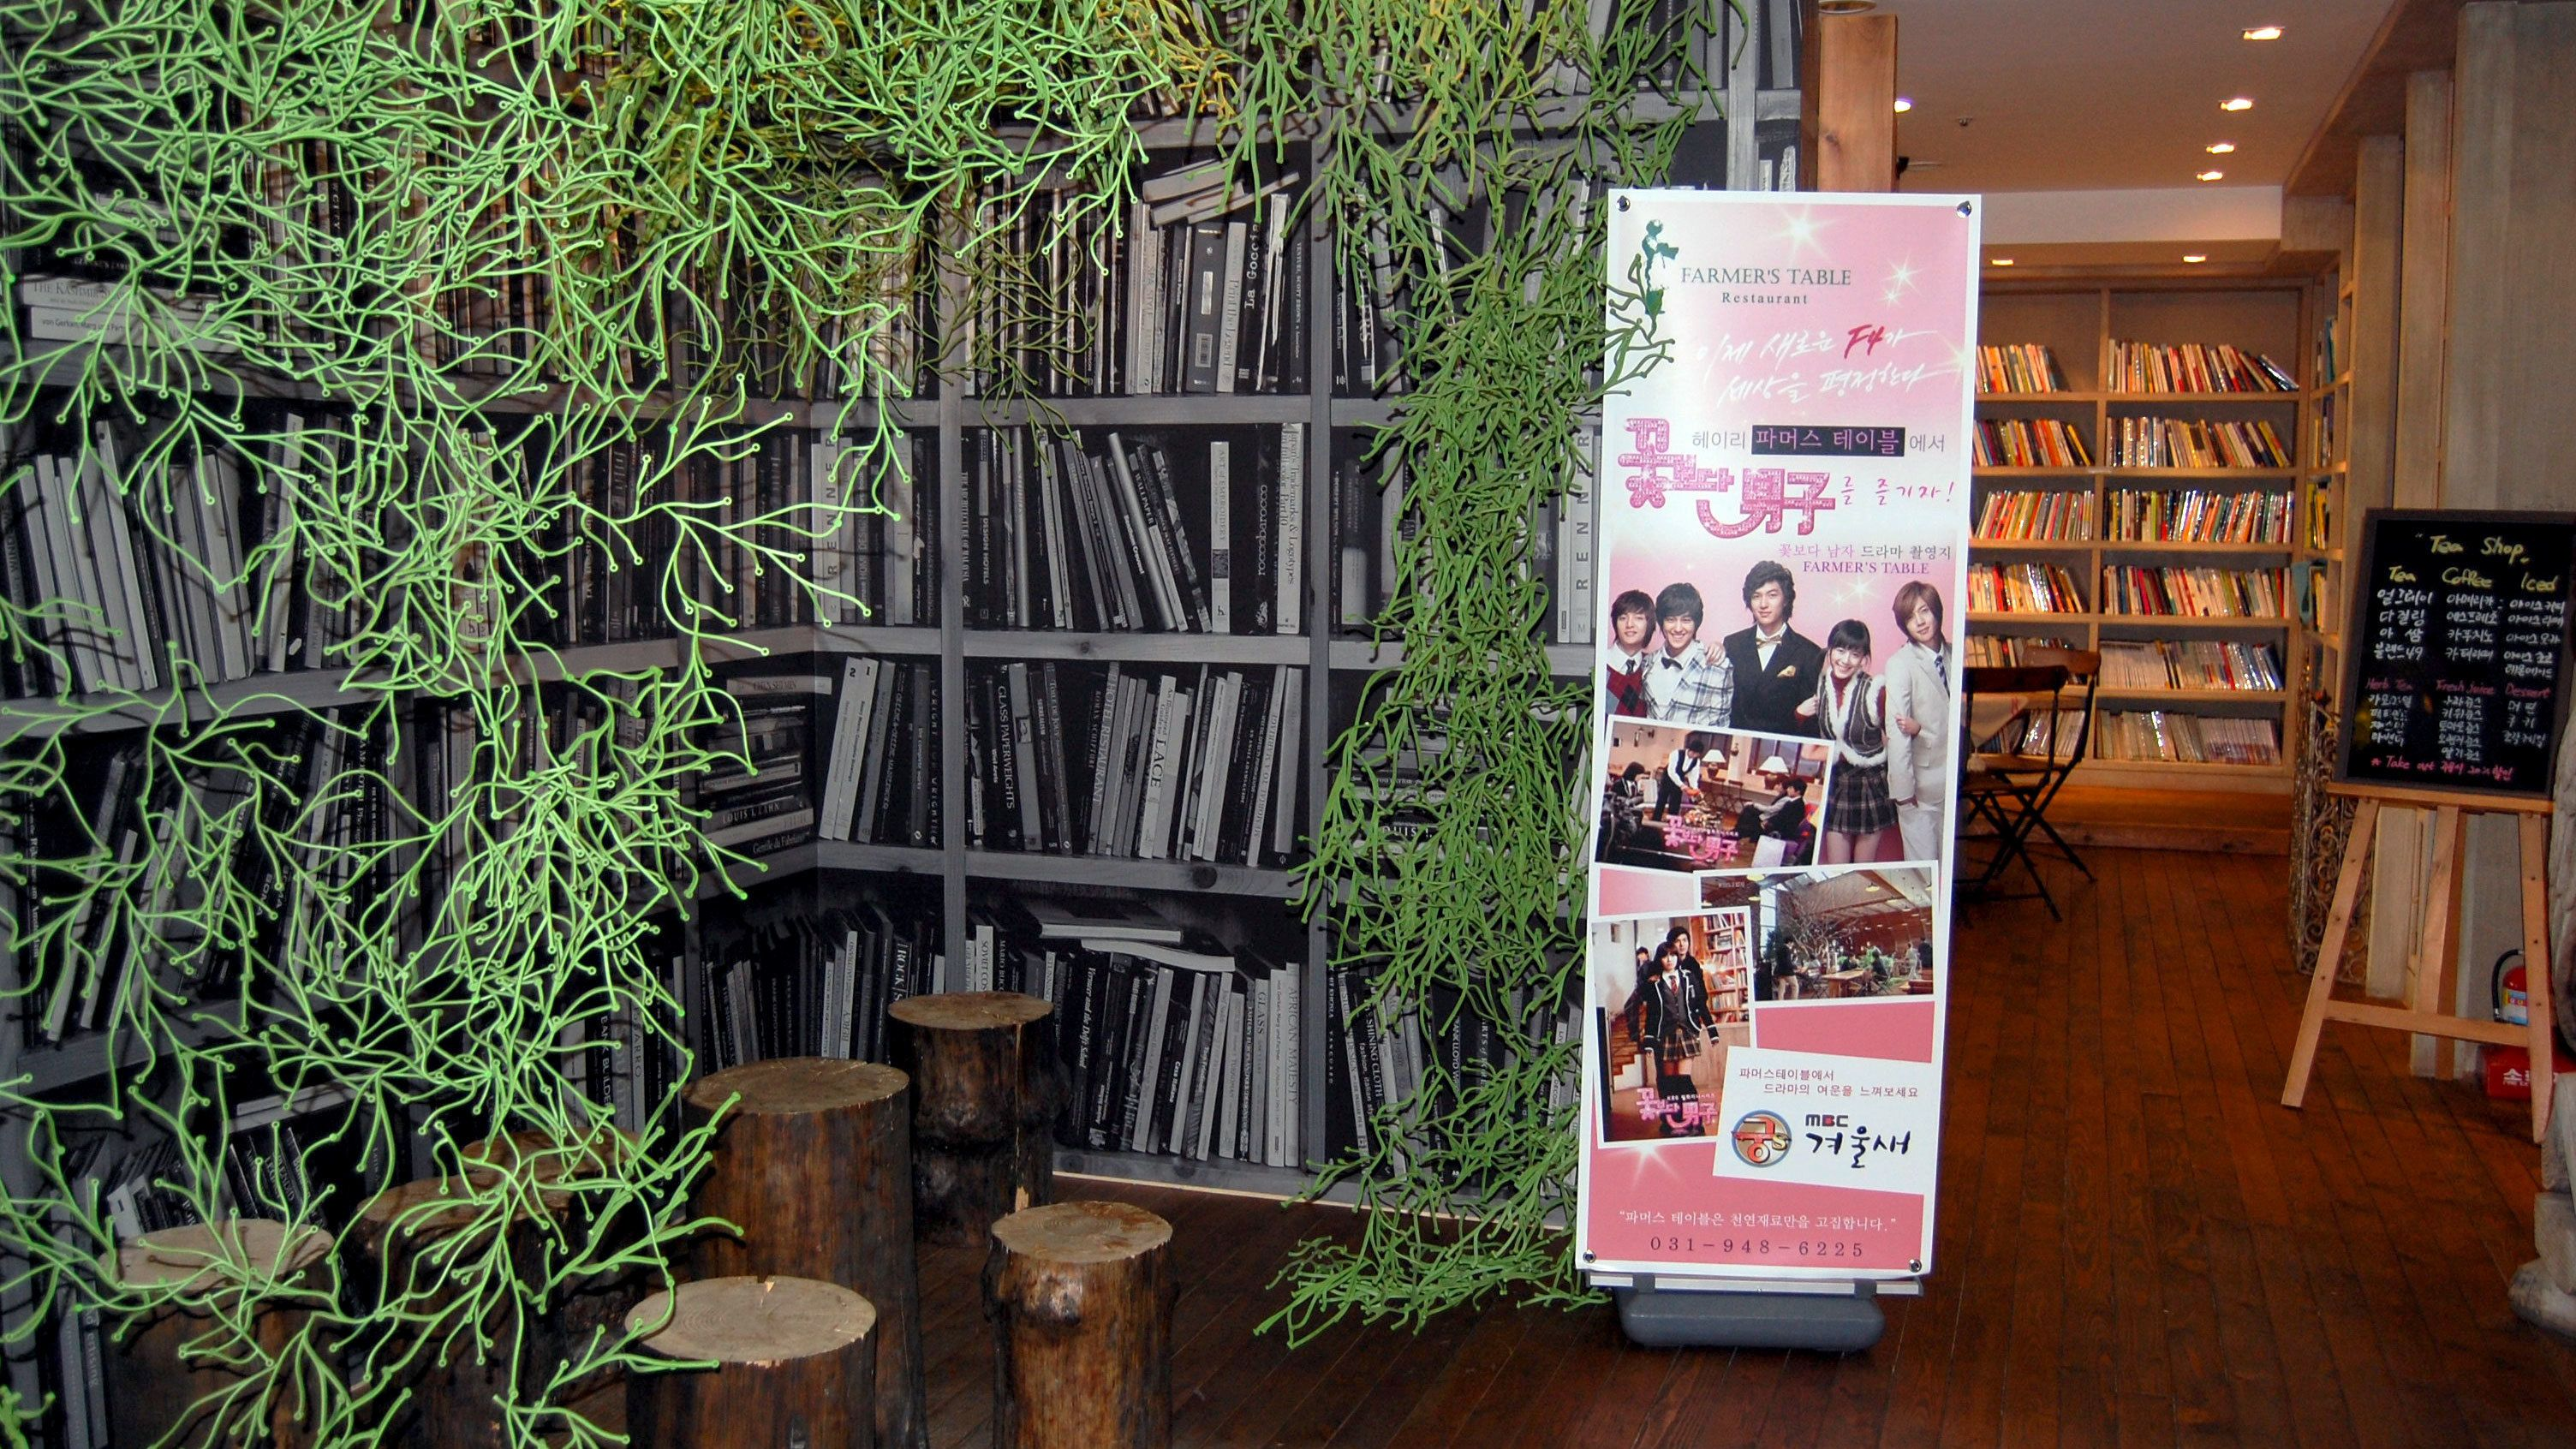 One of the filming locations of the popular Korean TV drama Boys Over Flowers in Seoul